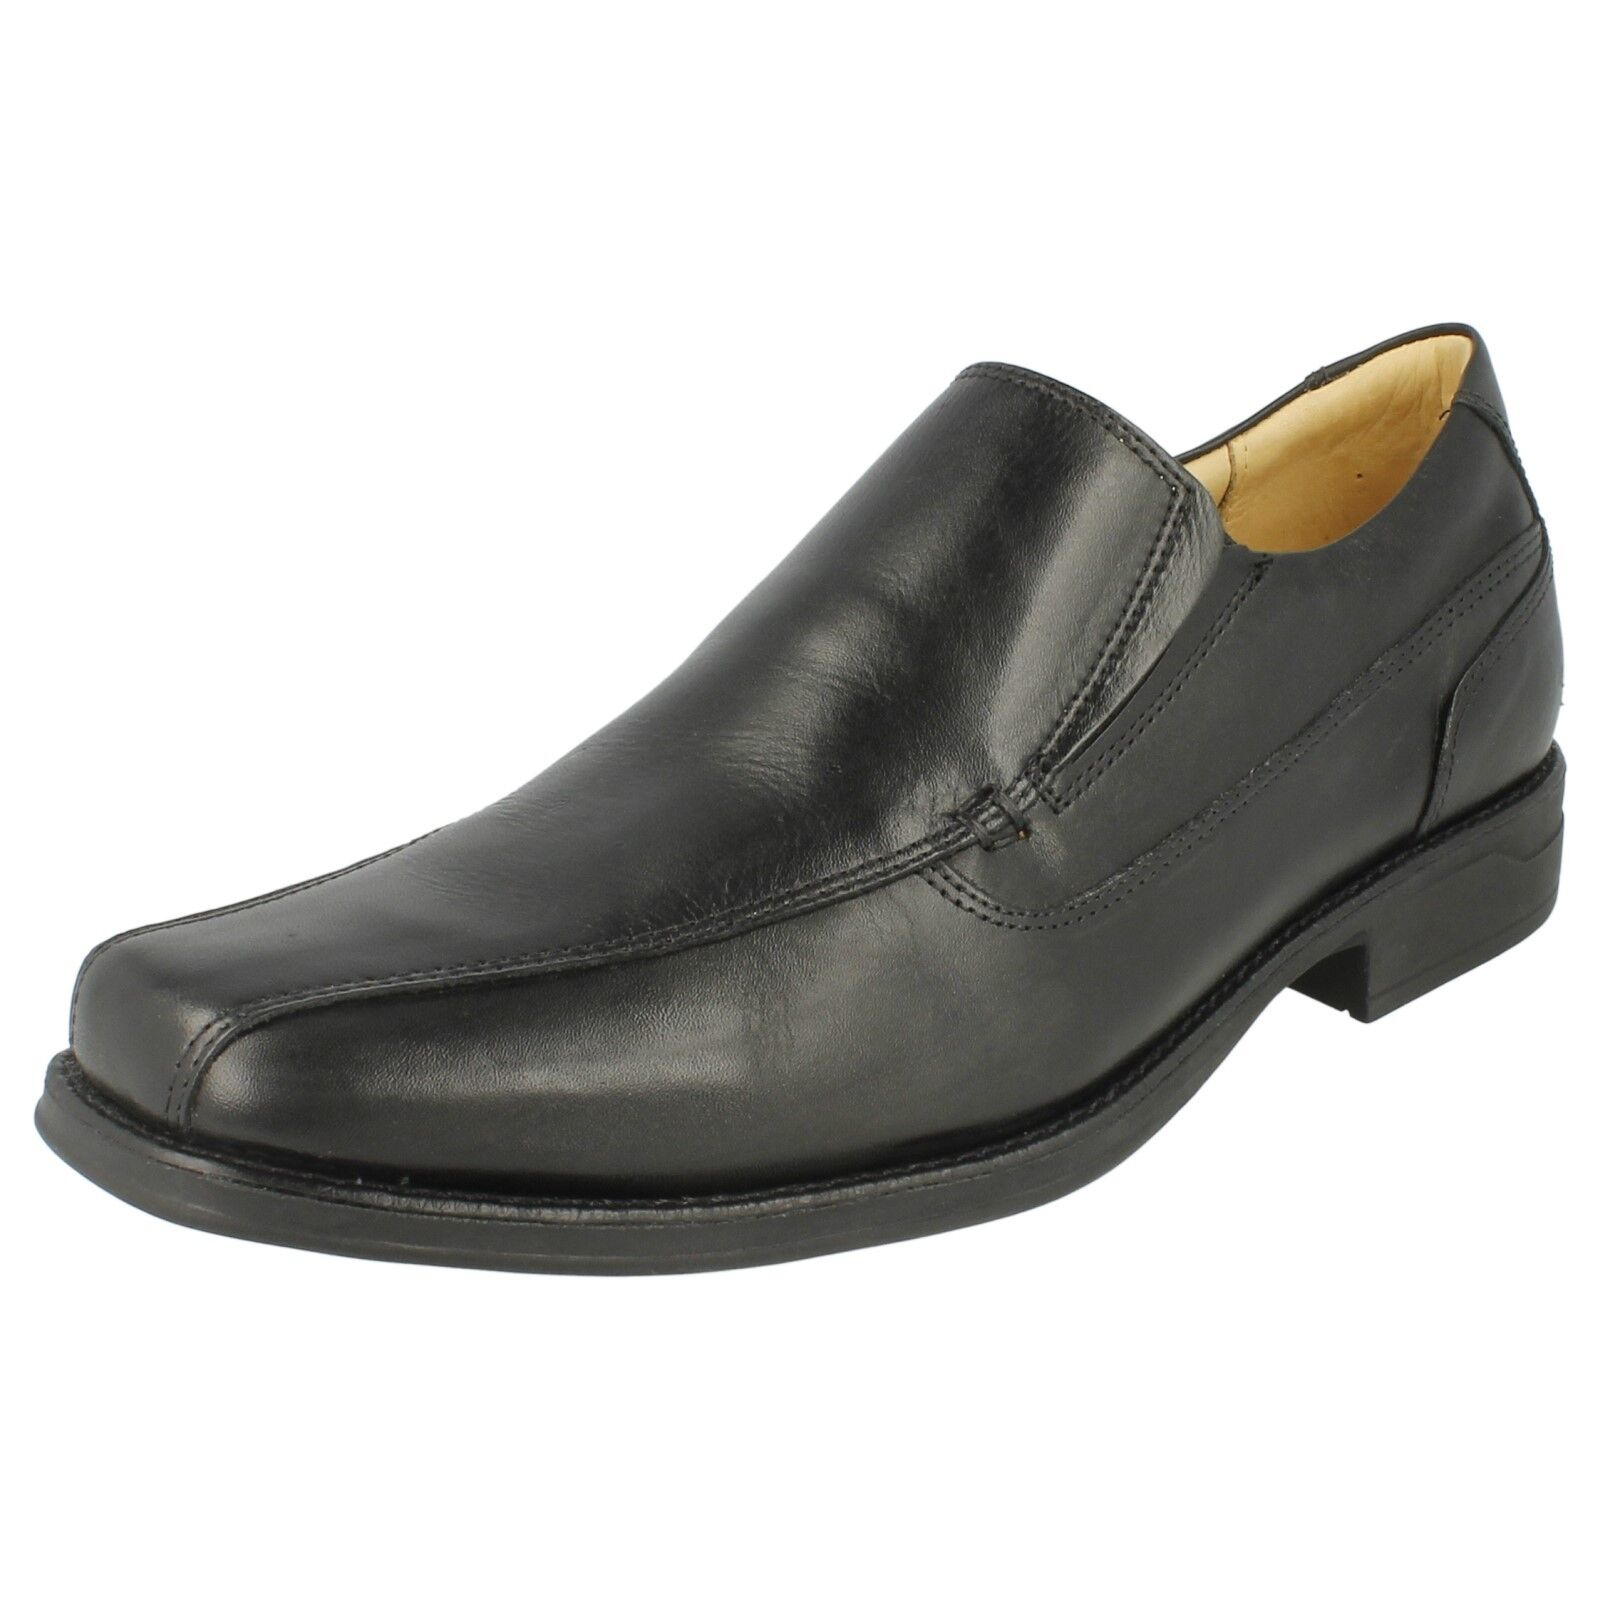 Mens Anatomic & Co Poloni Black Leather Smart Slip On Shoes